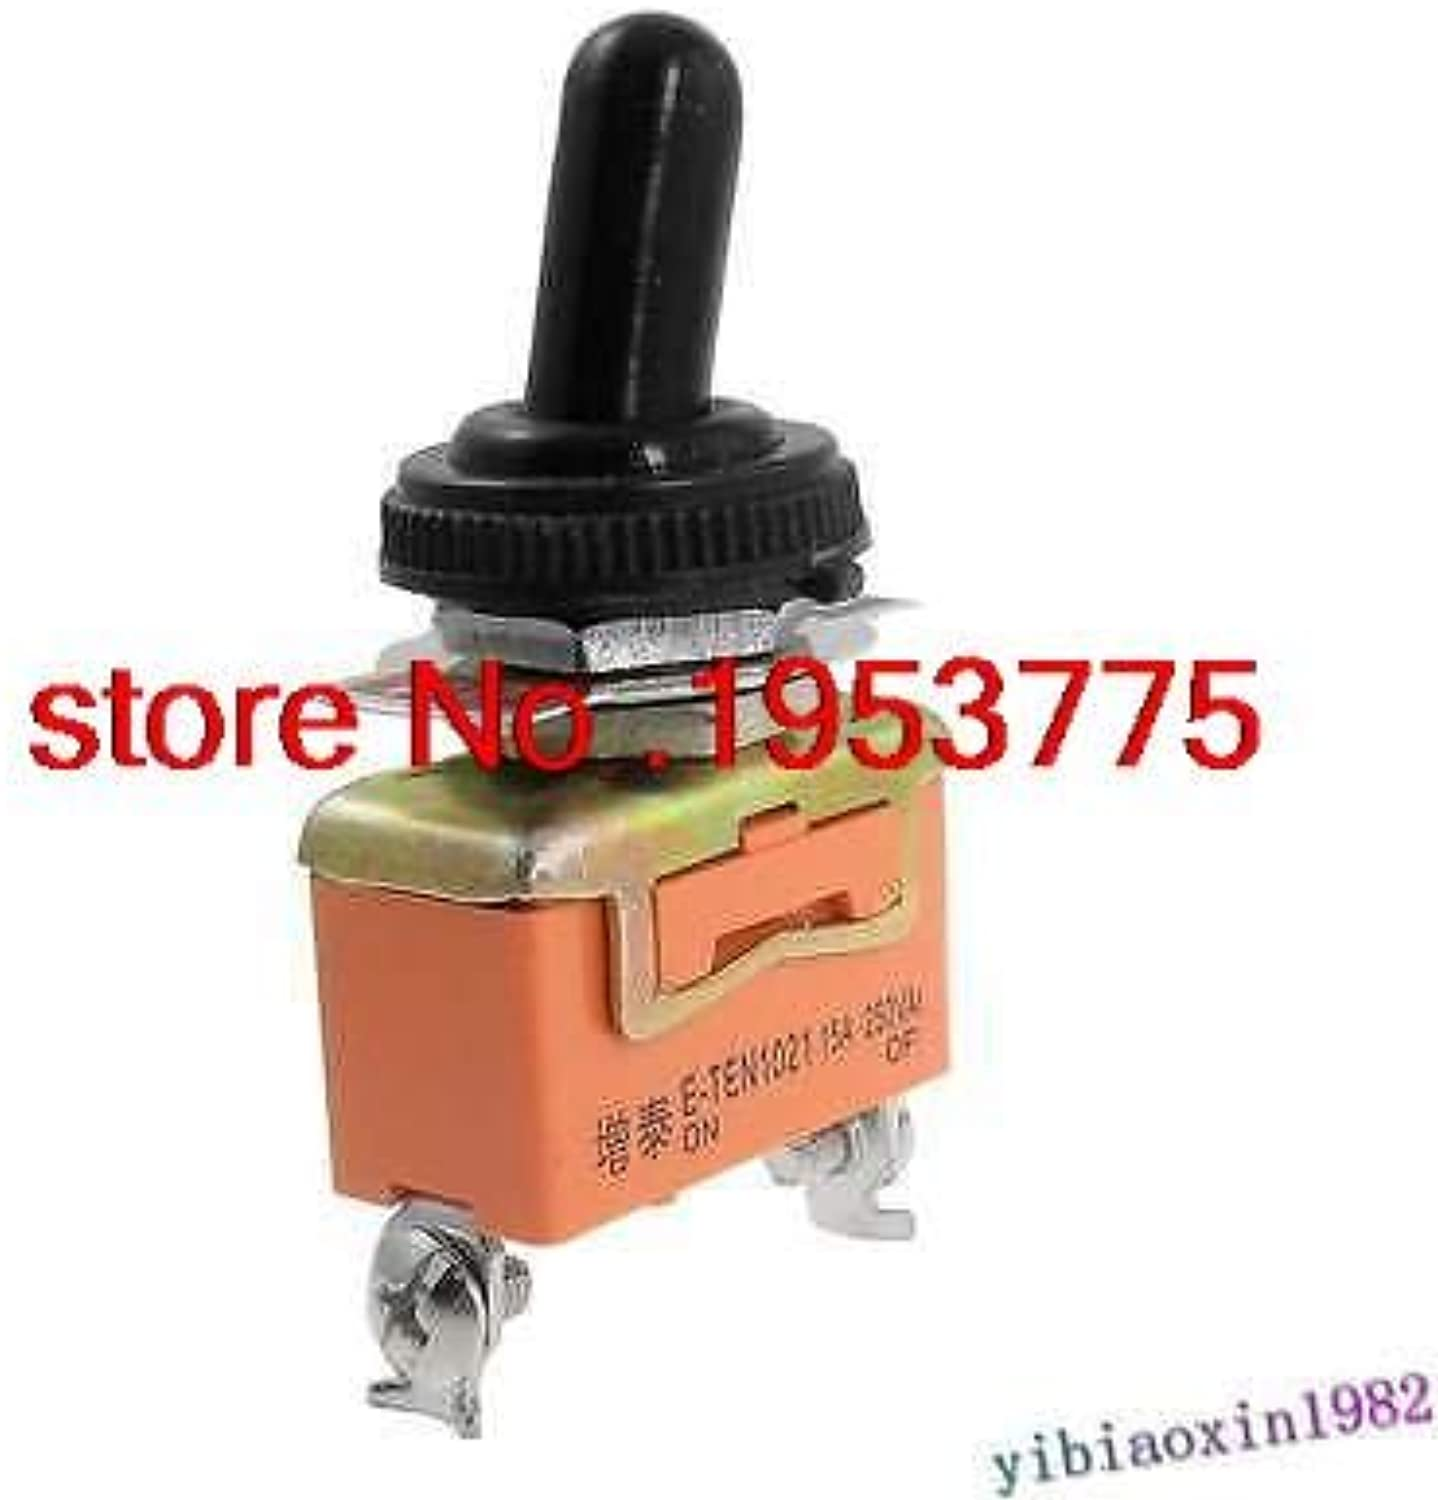 10pcs AC 250V 15A ON Off 2 Position SPST Toggle Switch with Waterproof Boot